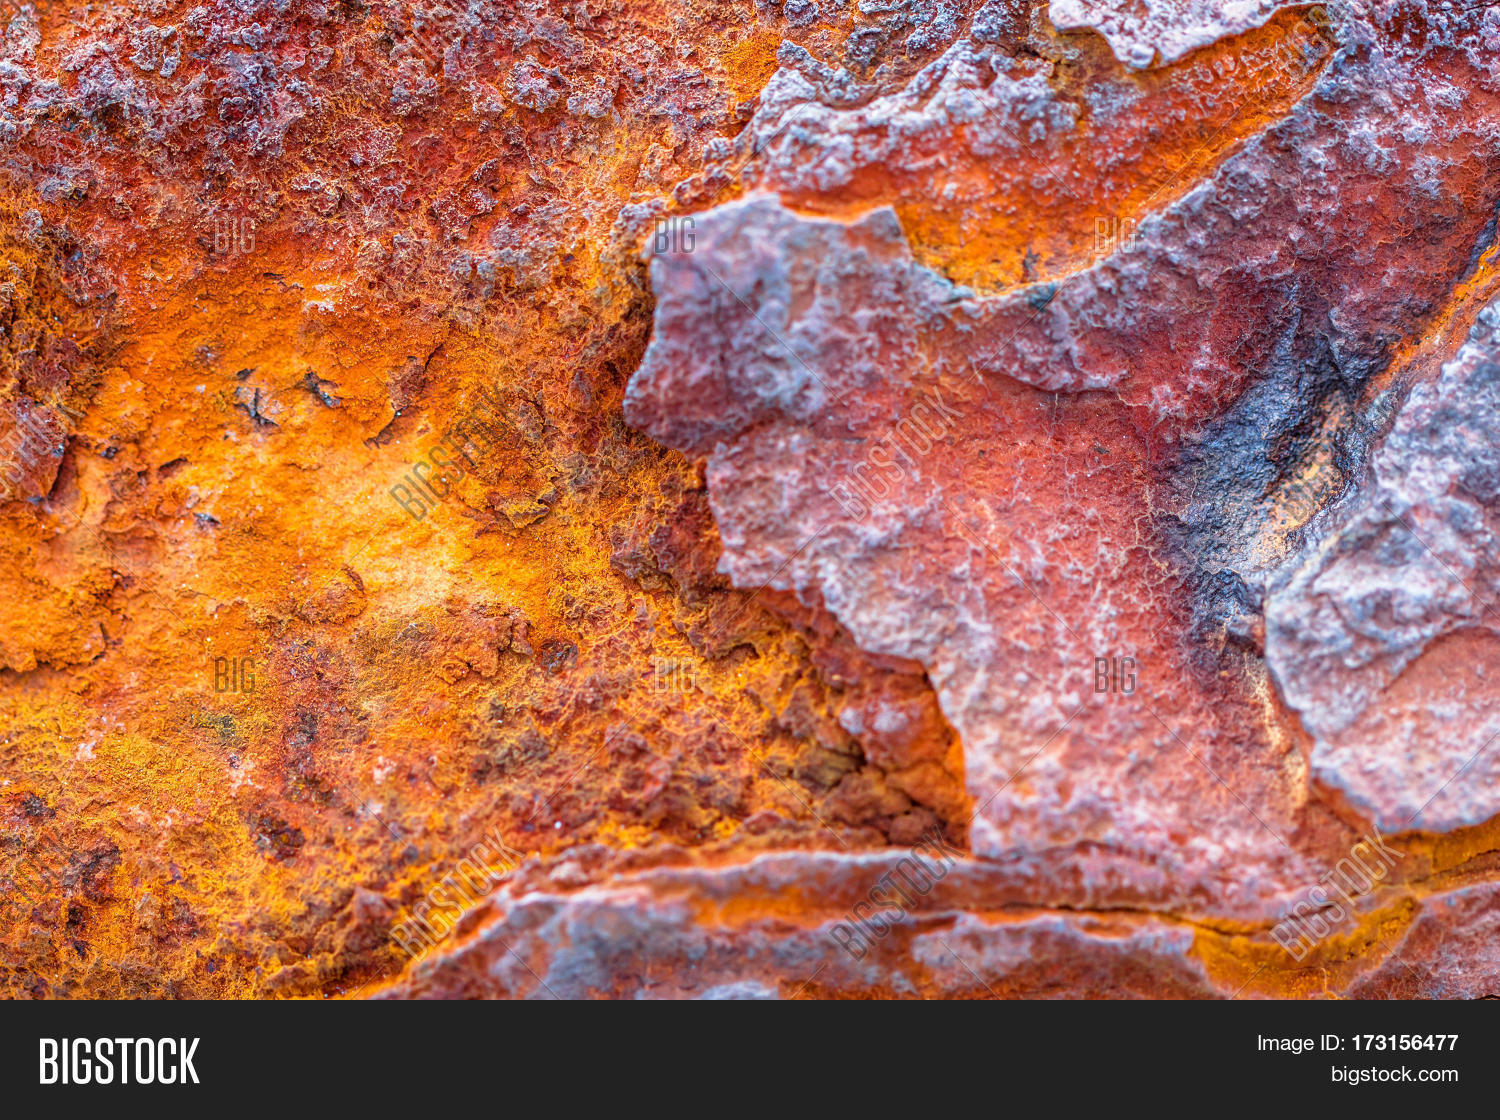 Old Abstract Iron Image & Photo (Free Trial) | Bigstock